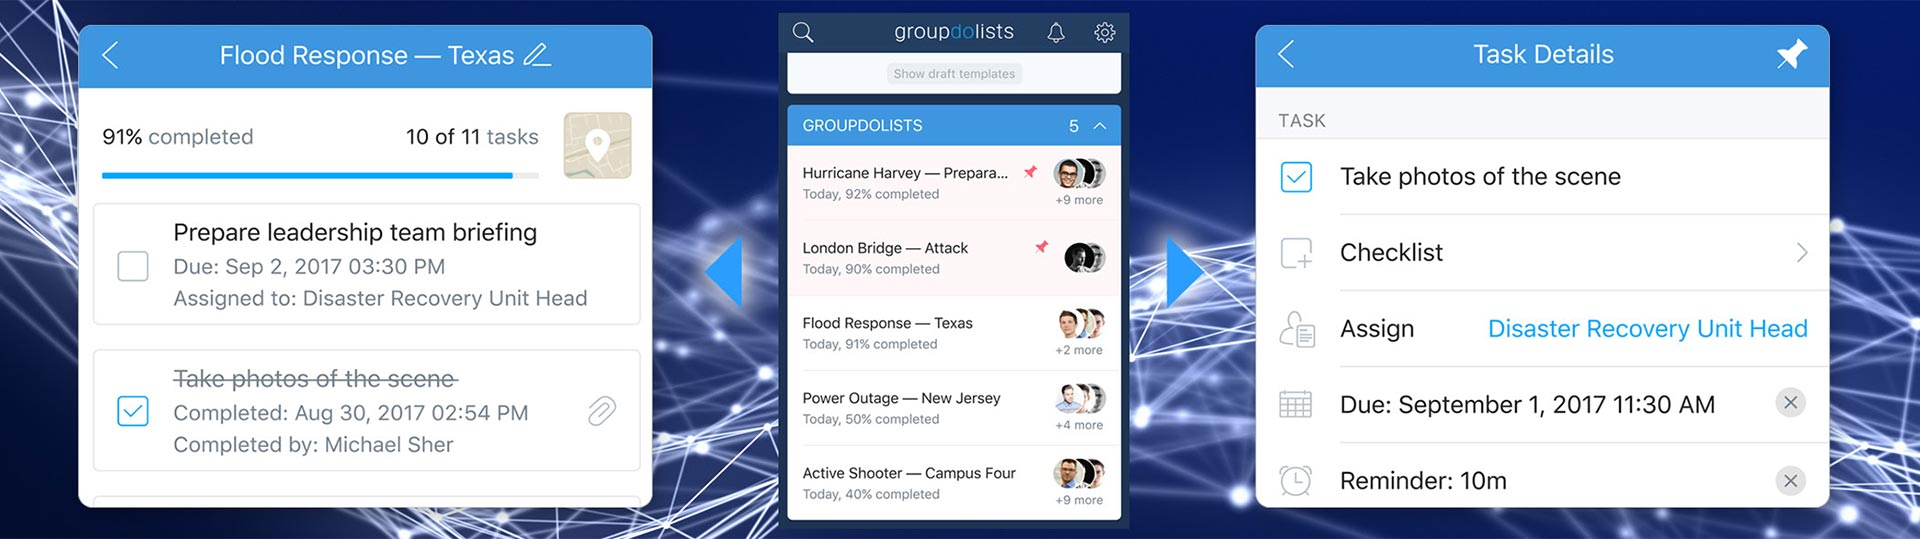 groupdolists application